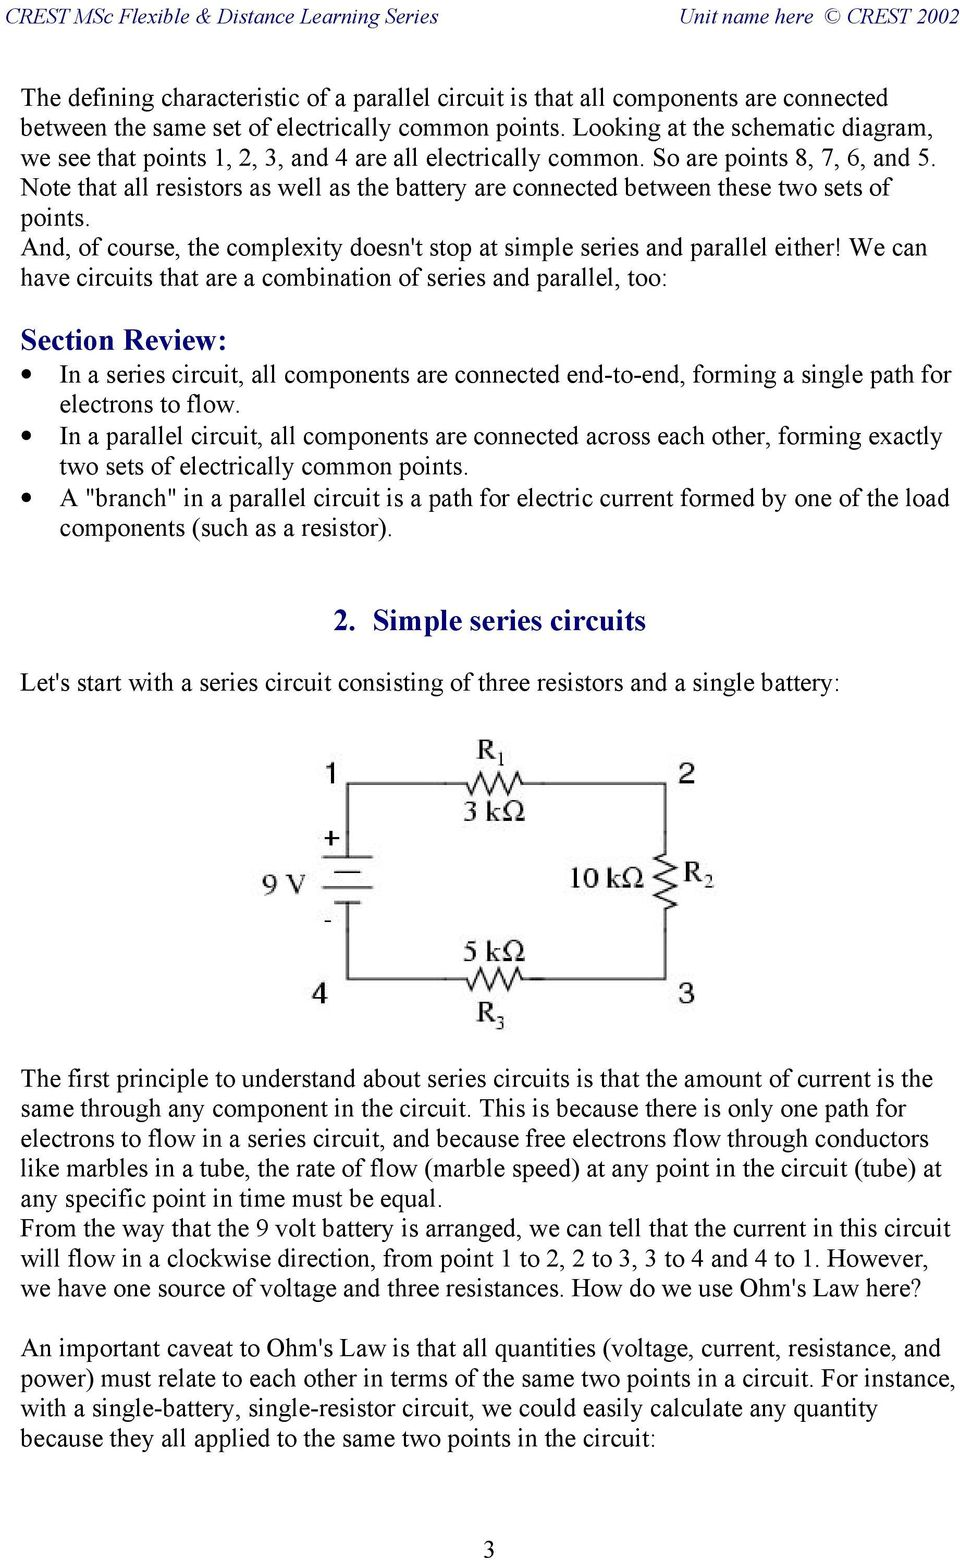 Fb Dc3 Electric Circuits Series And Parallel Pdf Commonly Found In Various Type Of Resistors Are A Note That All As Well The Battery Connected Between These Two Sets